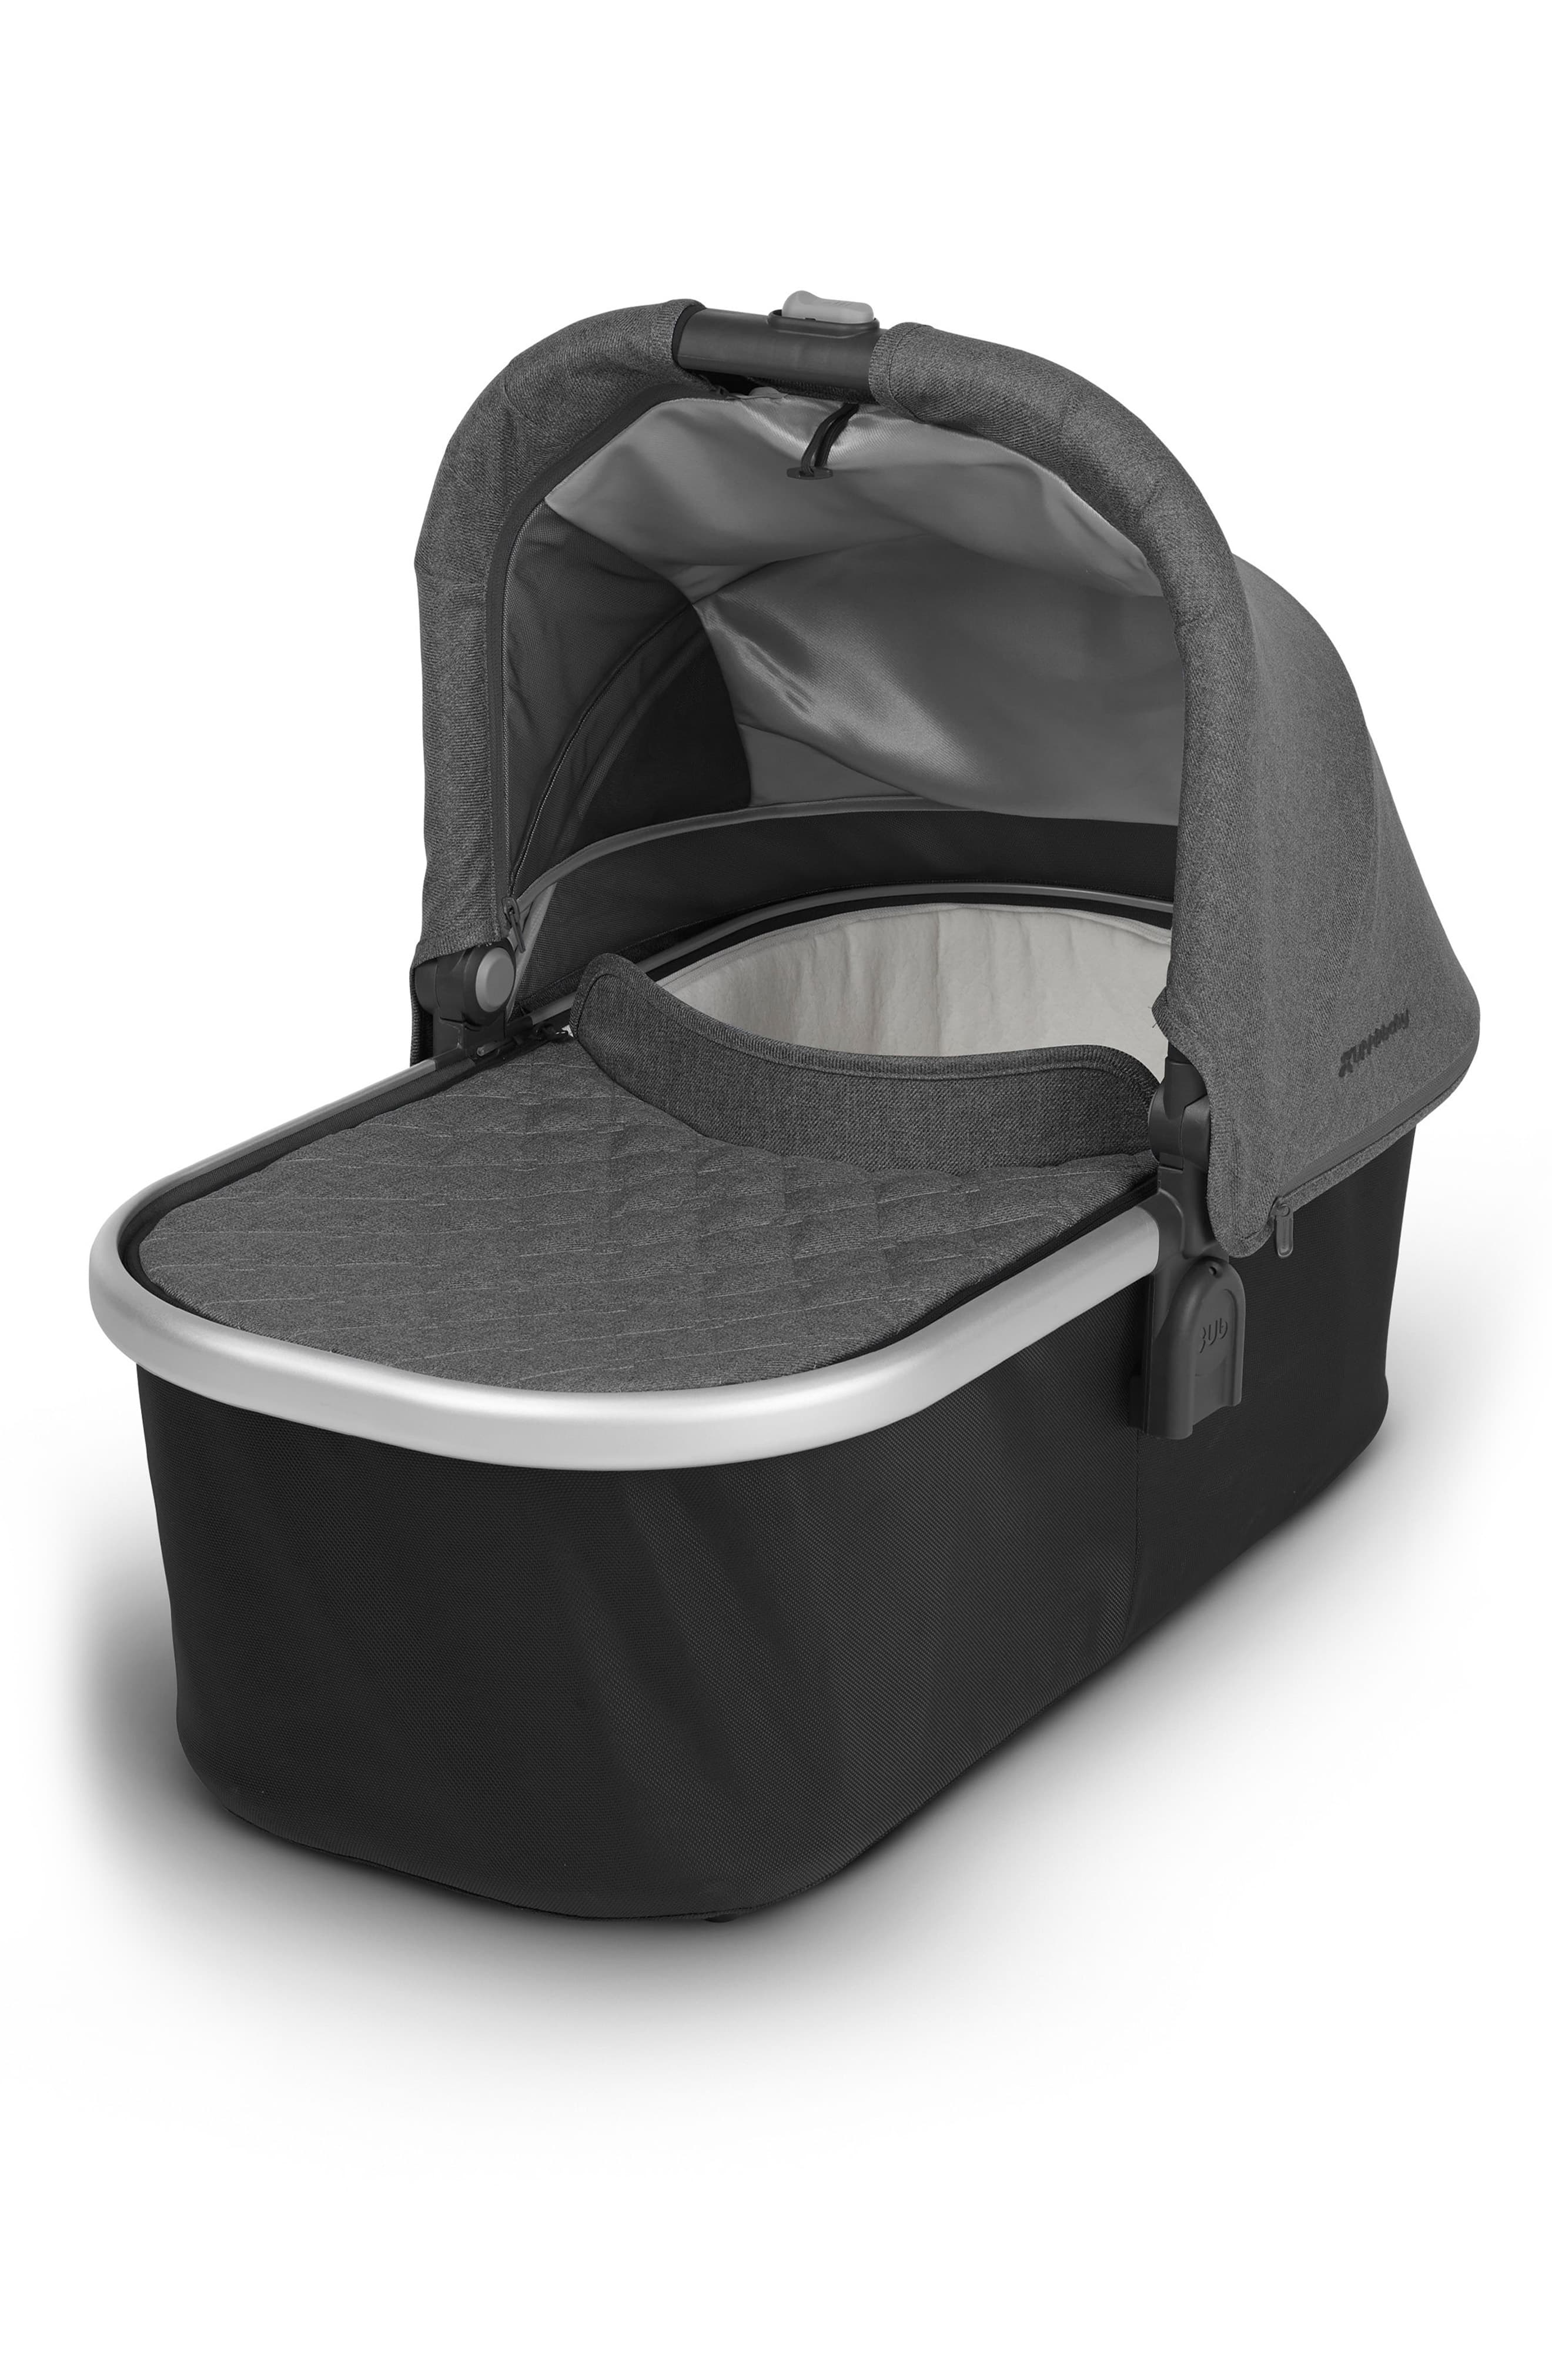 UPPAbaby 2018 for CRUZ or VISTA Strollers in 2019